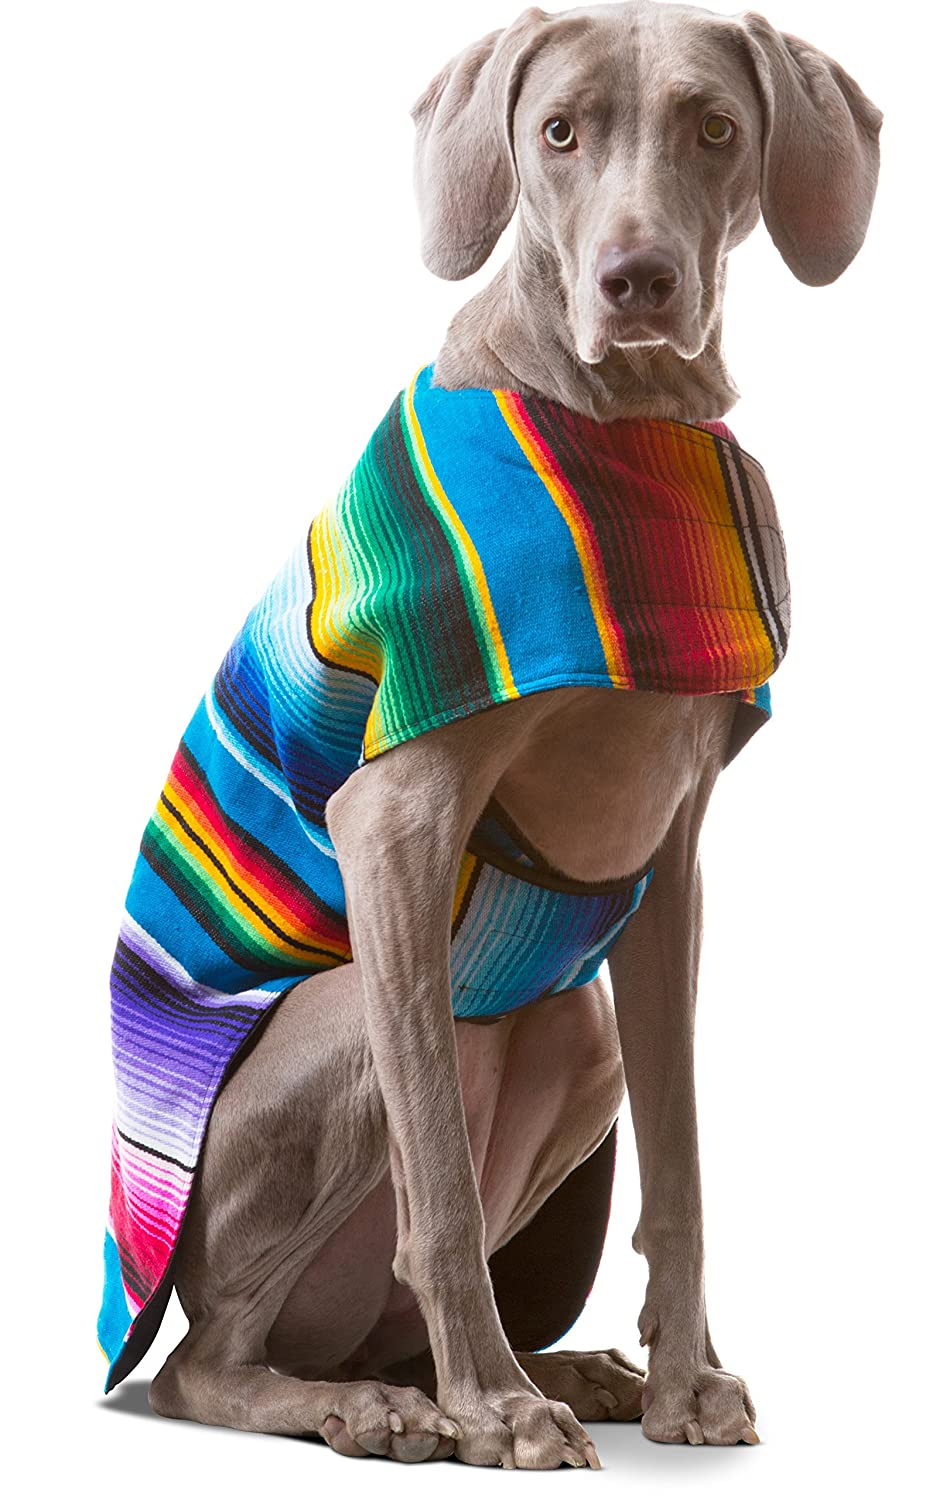 Colorful sweater on gray dog